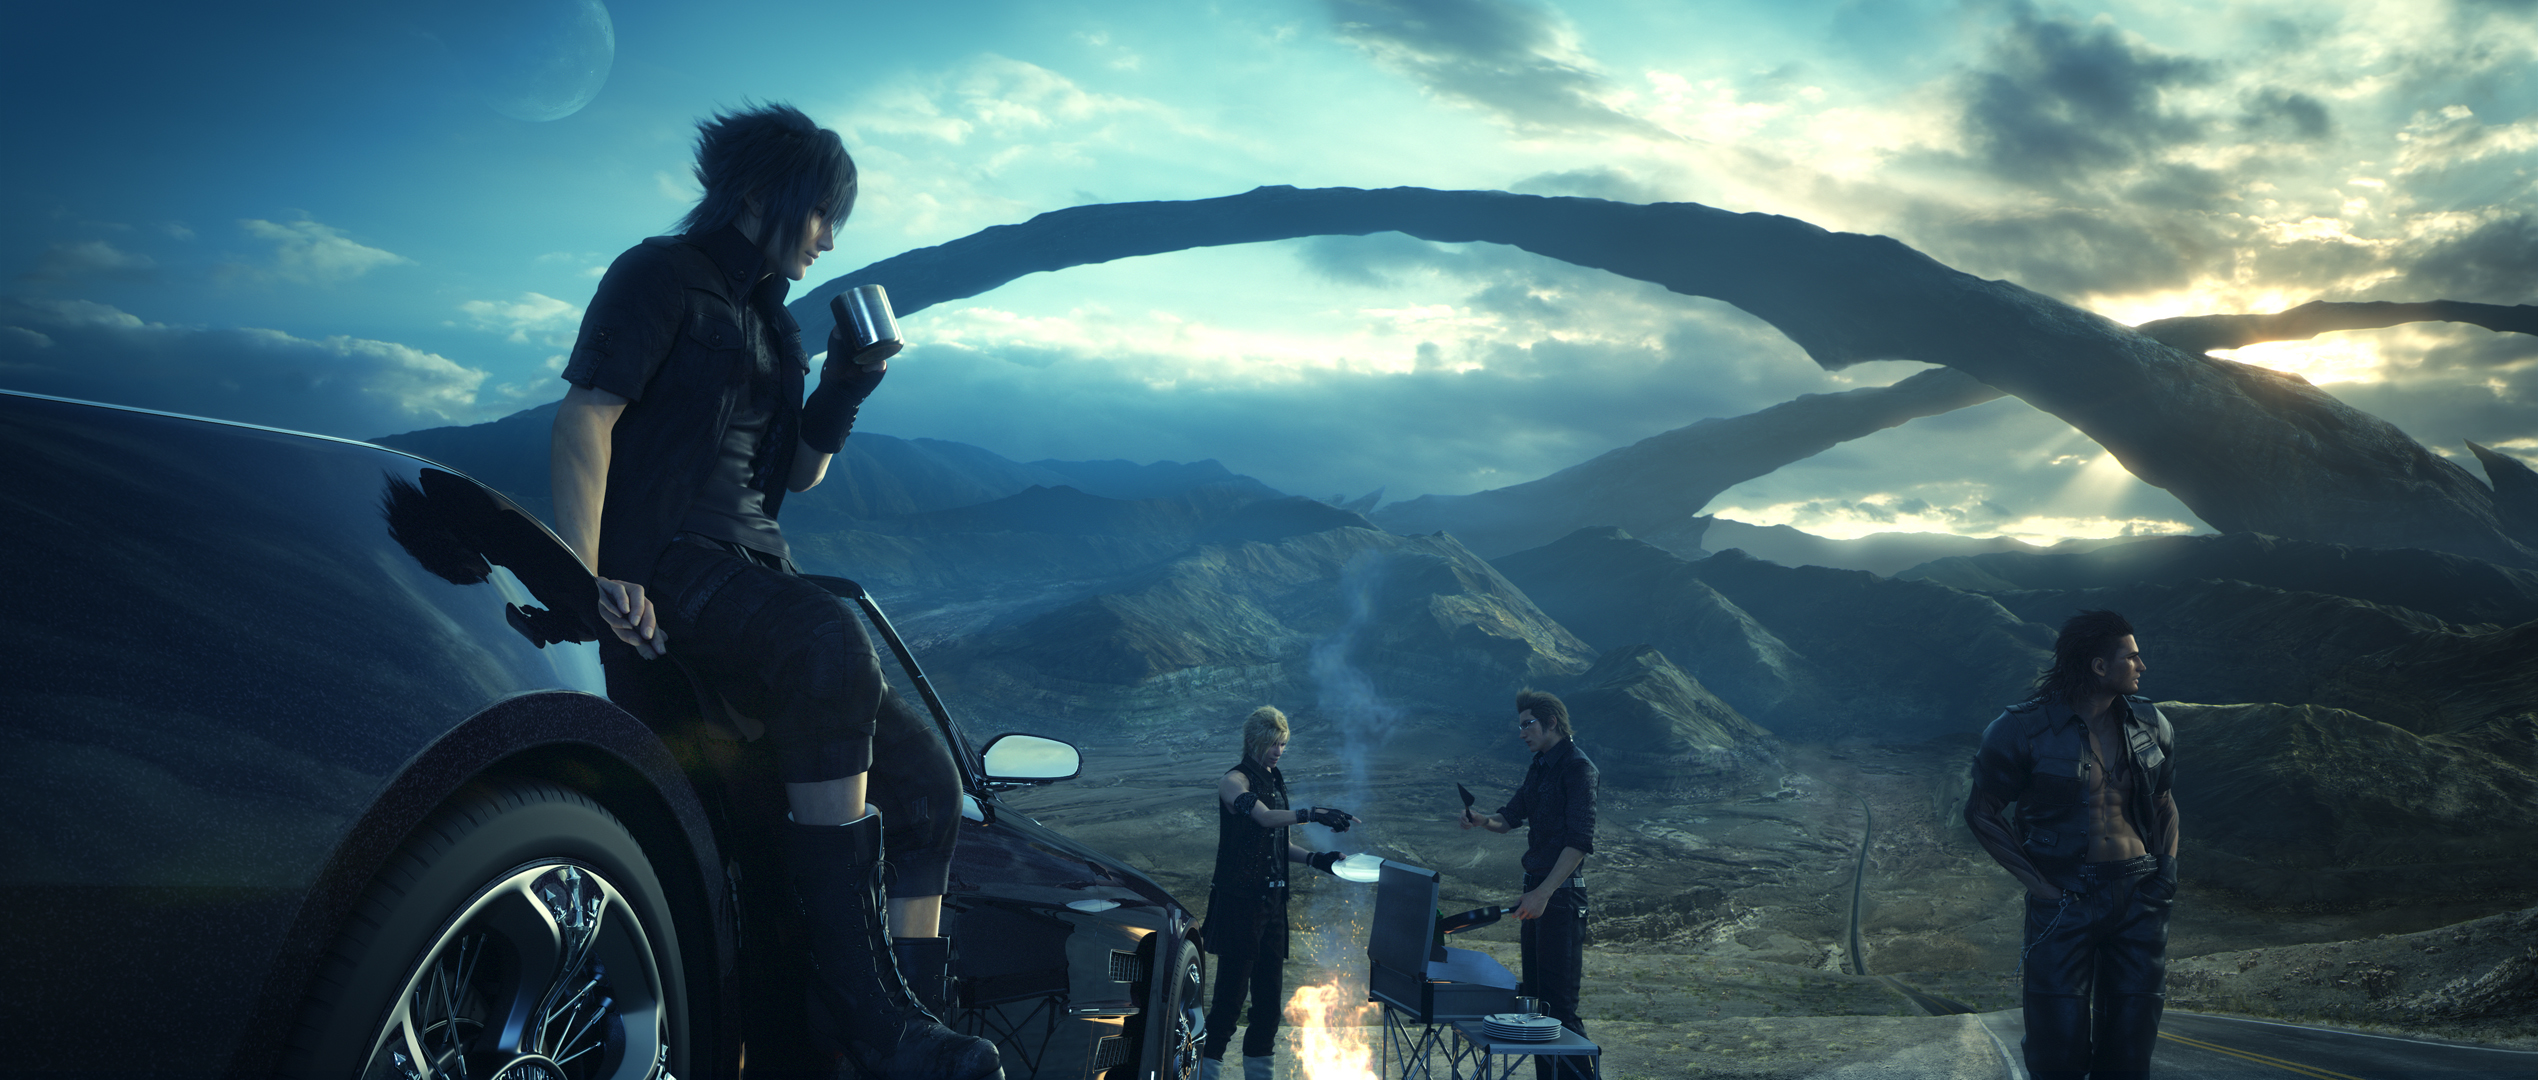 60 final fantasy xv hd wallpapers | hintergründe - wallpaper abyss